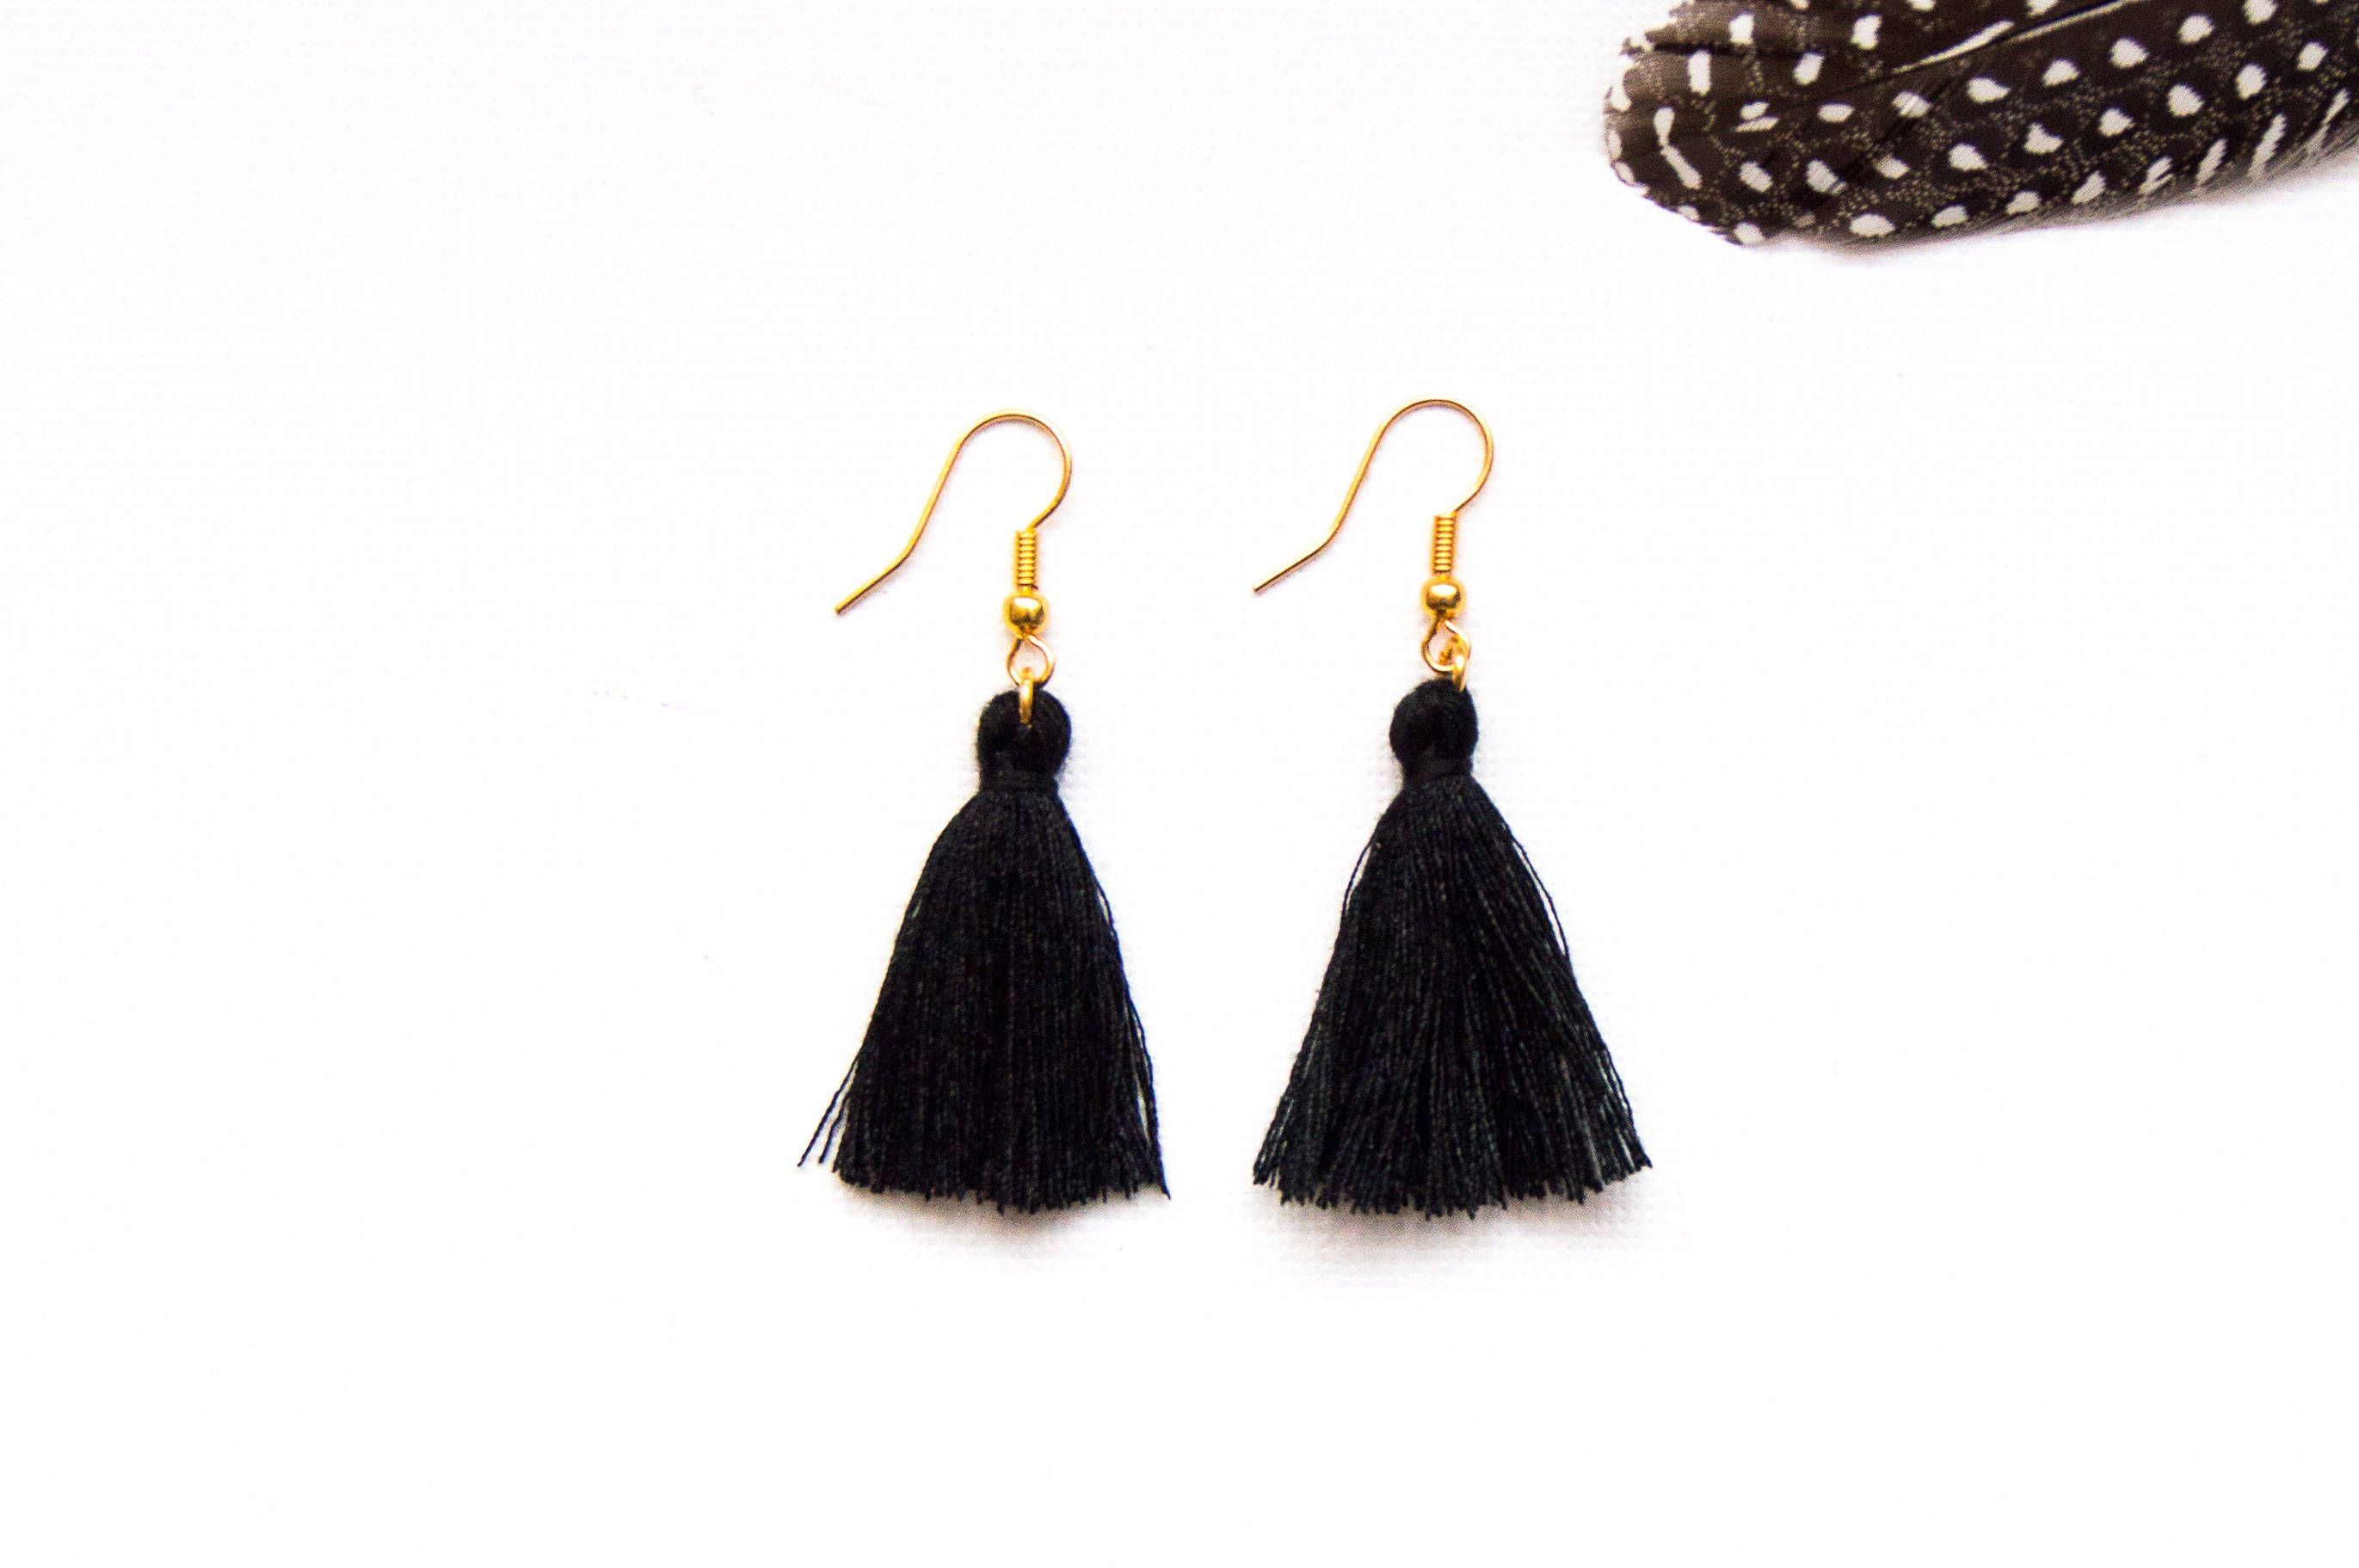 rock fringe image fire earrings girls leather ice products natural